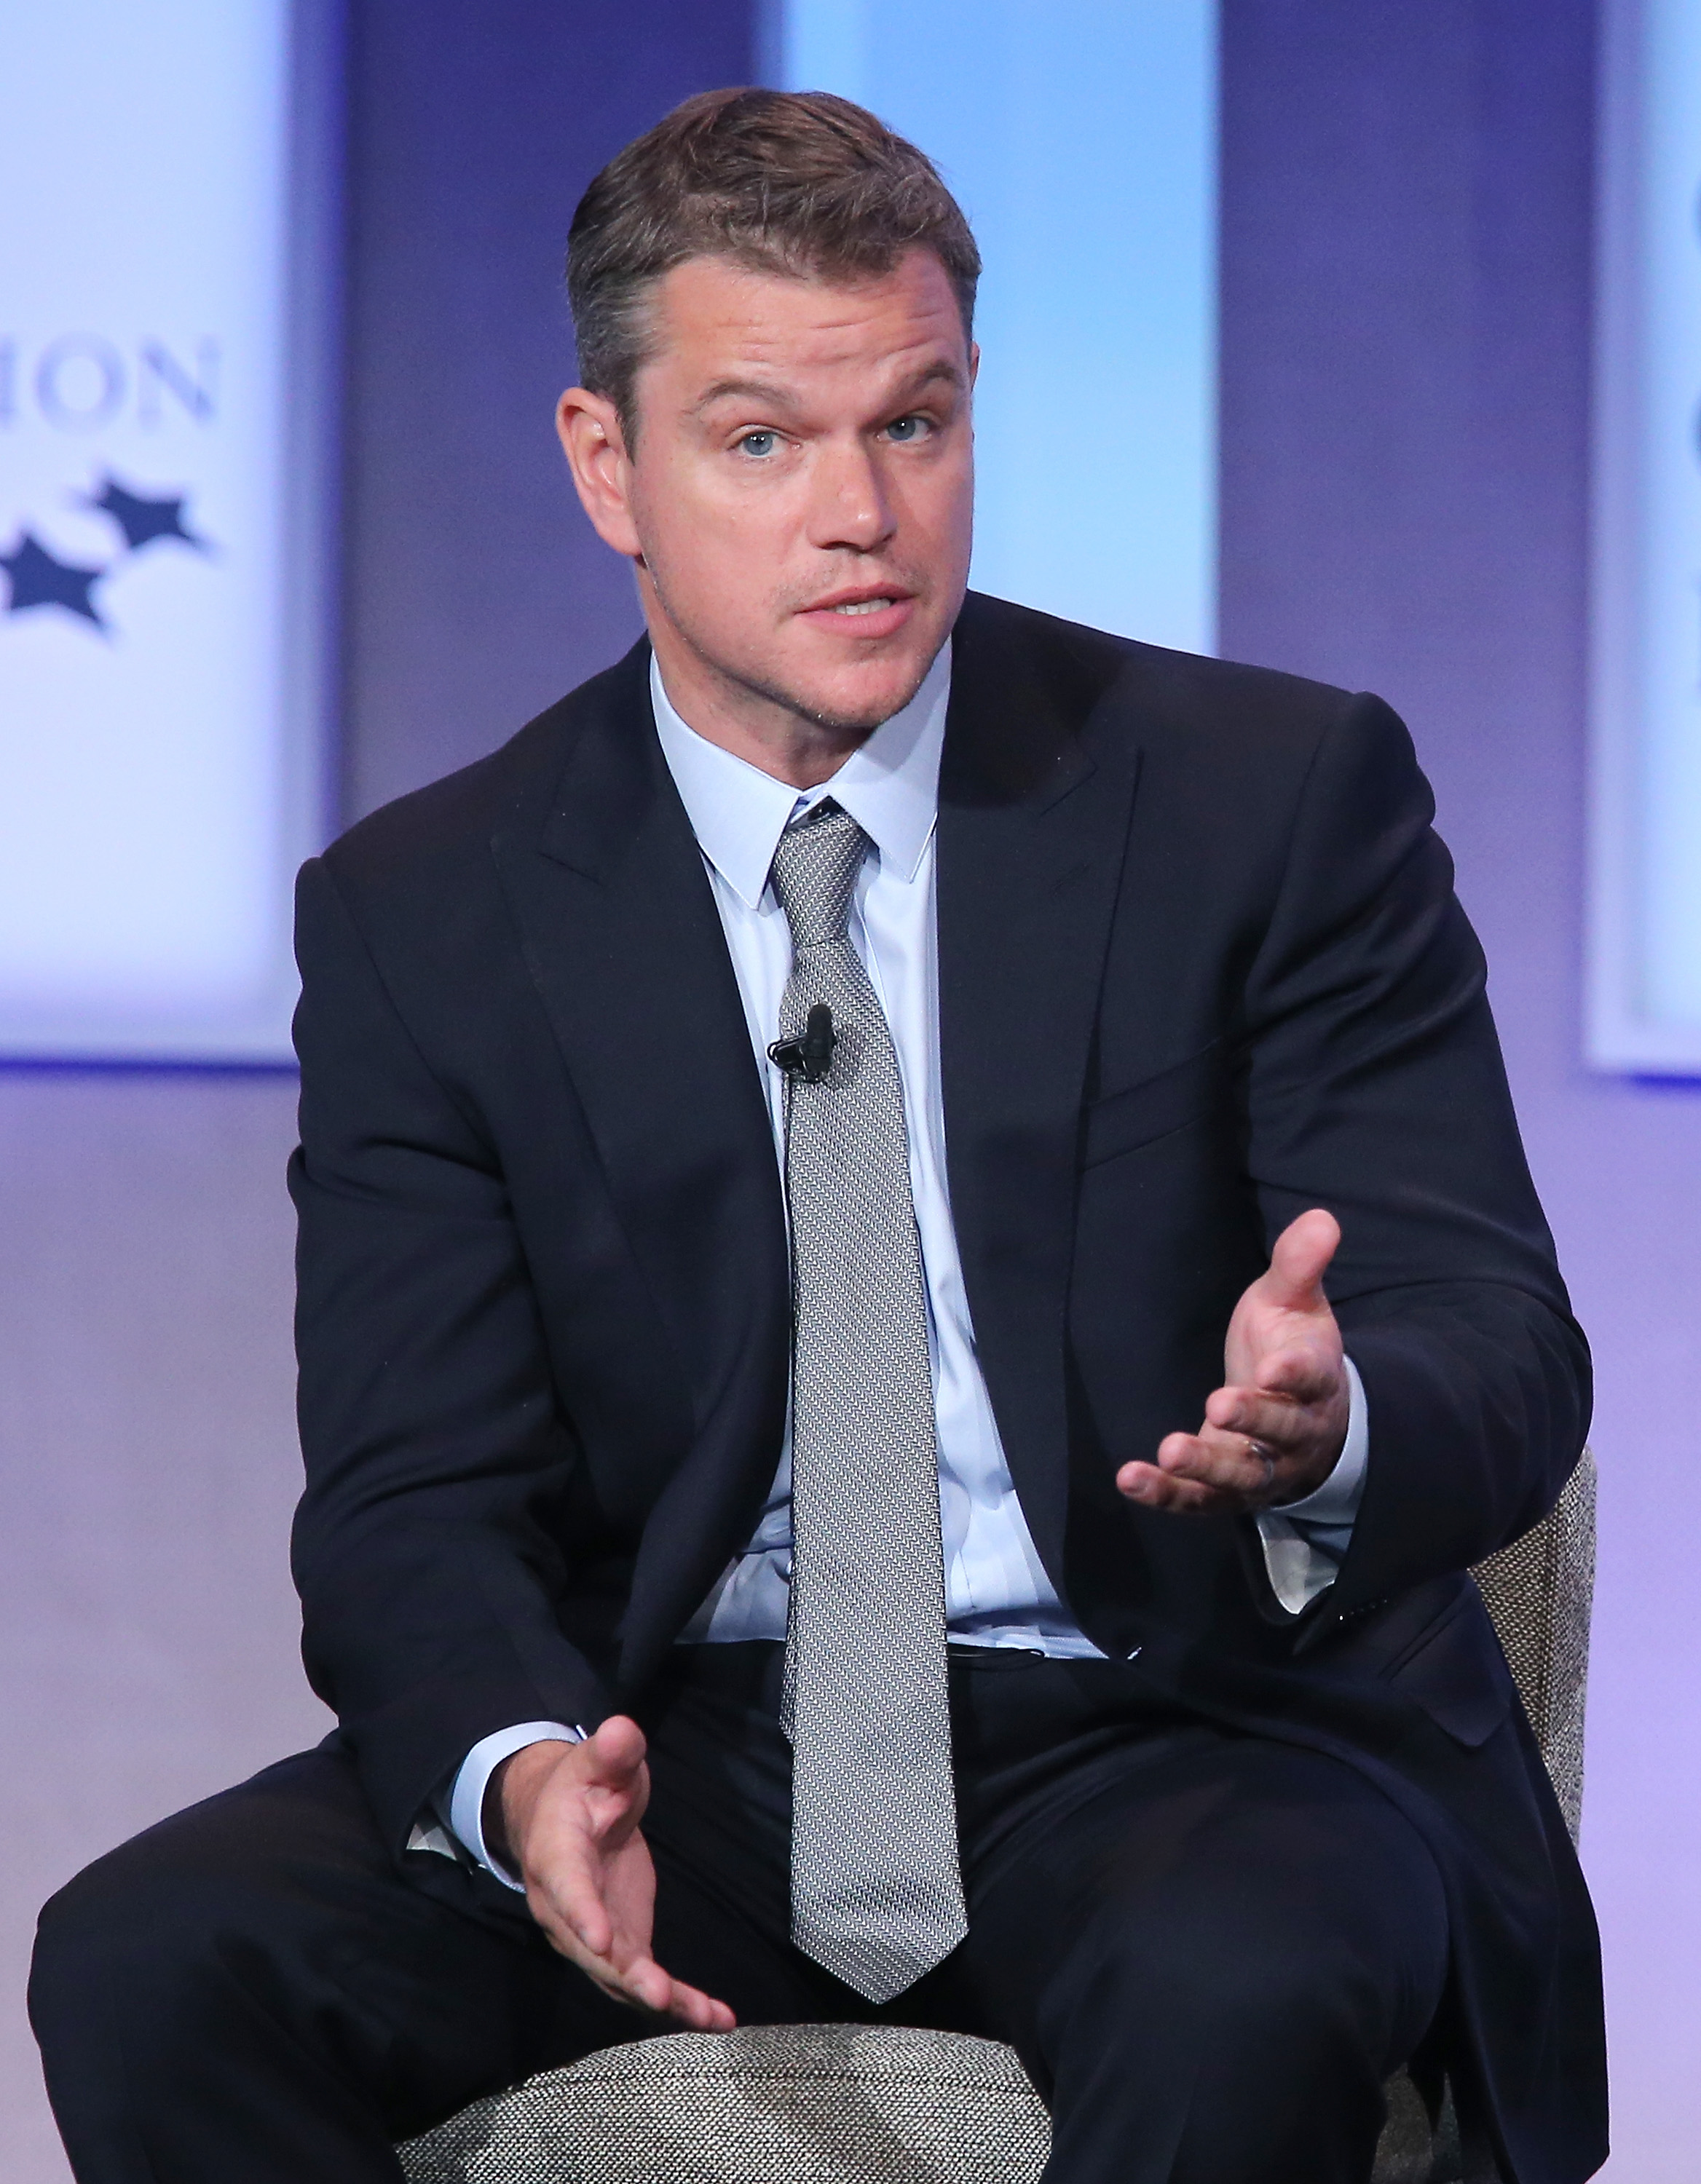 Actor Matt Damon speaks at the Clinton Global Initiative Meeting on the third day of the Clinton Global Initiative's 10th Annual Meeting at the Sheraton New York Hotel & Towers on September 23, 2014 in New York City.